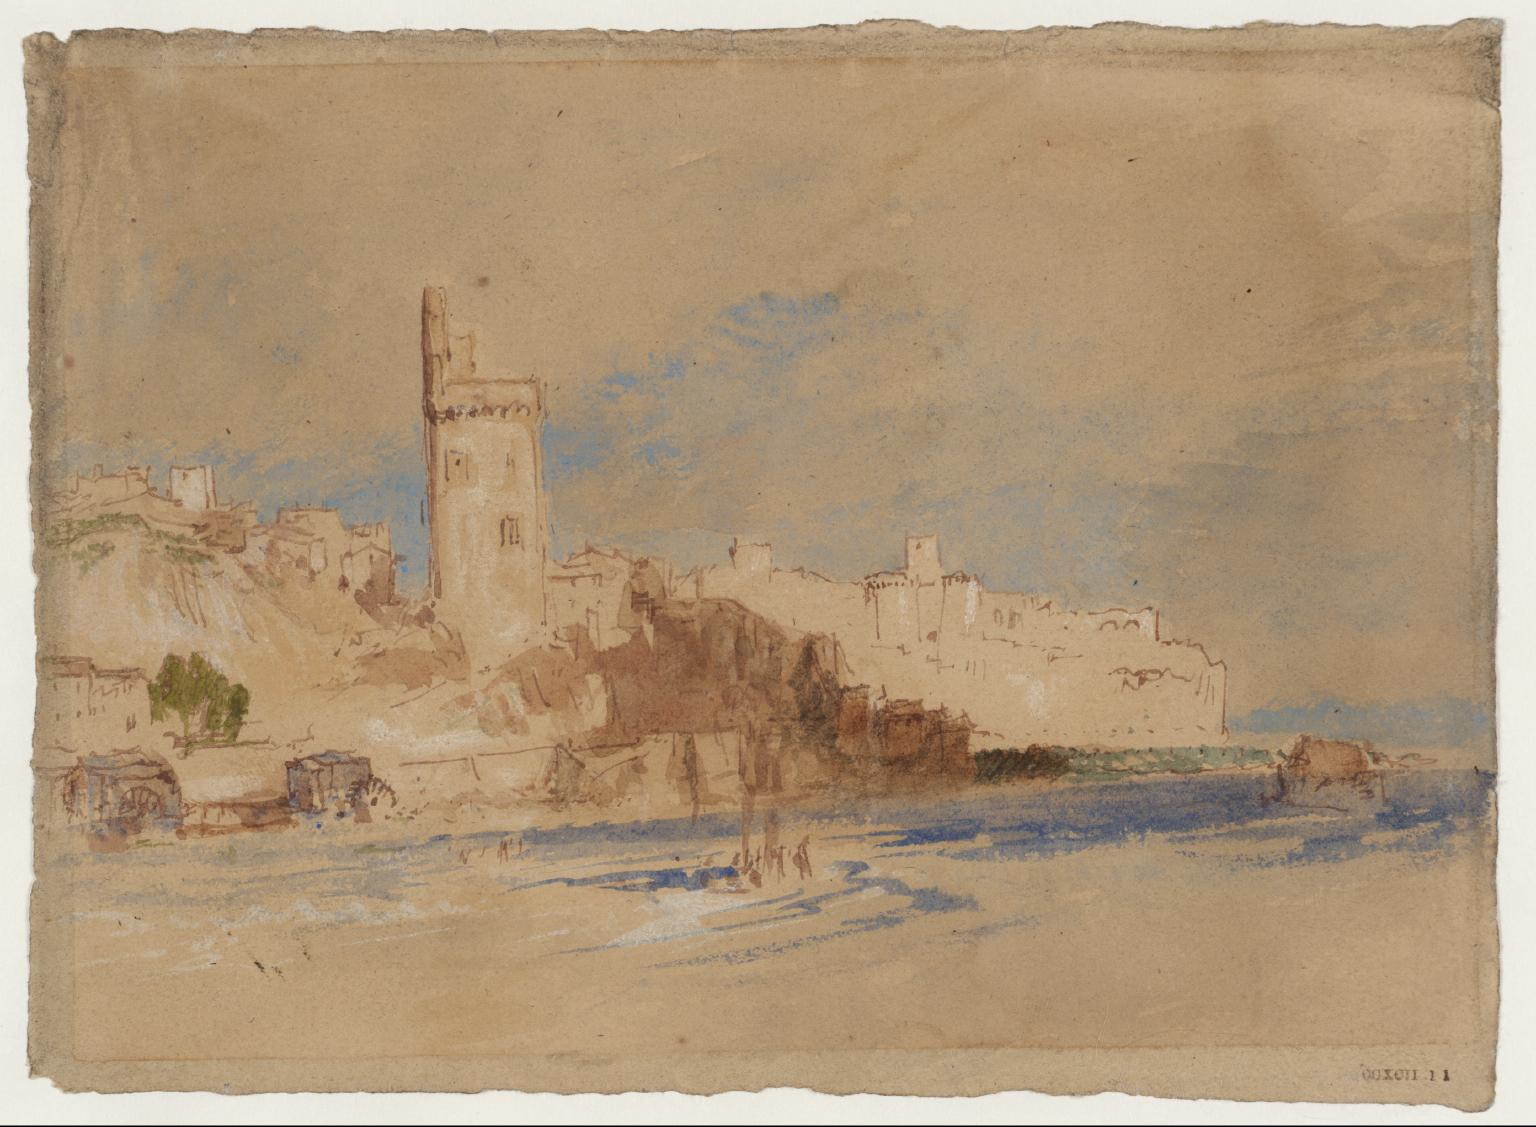 Waterside Buildings, ? South of France or Italy c.1834 Joseph Mallord William Turner 1775-1851, Gouache, encre and aquarelle sur papier bistre, 143 x 193 mm. ©Tate Gallery, Londres, D 28958 TB CCXCII 11©Tate photo Legs Turner Accepted by the nation as part of the Turner Bequest 1856, http://www.tate.org.uk/art/work/D28958